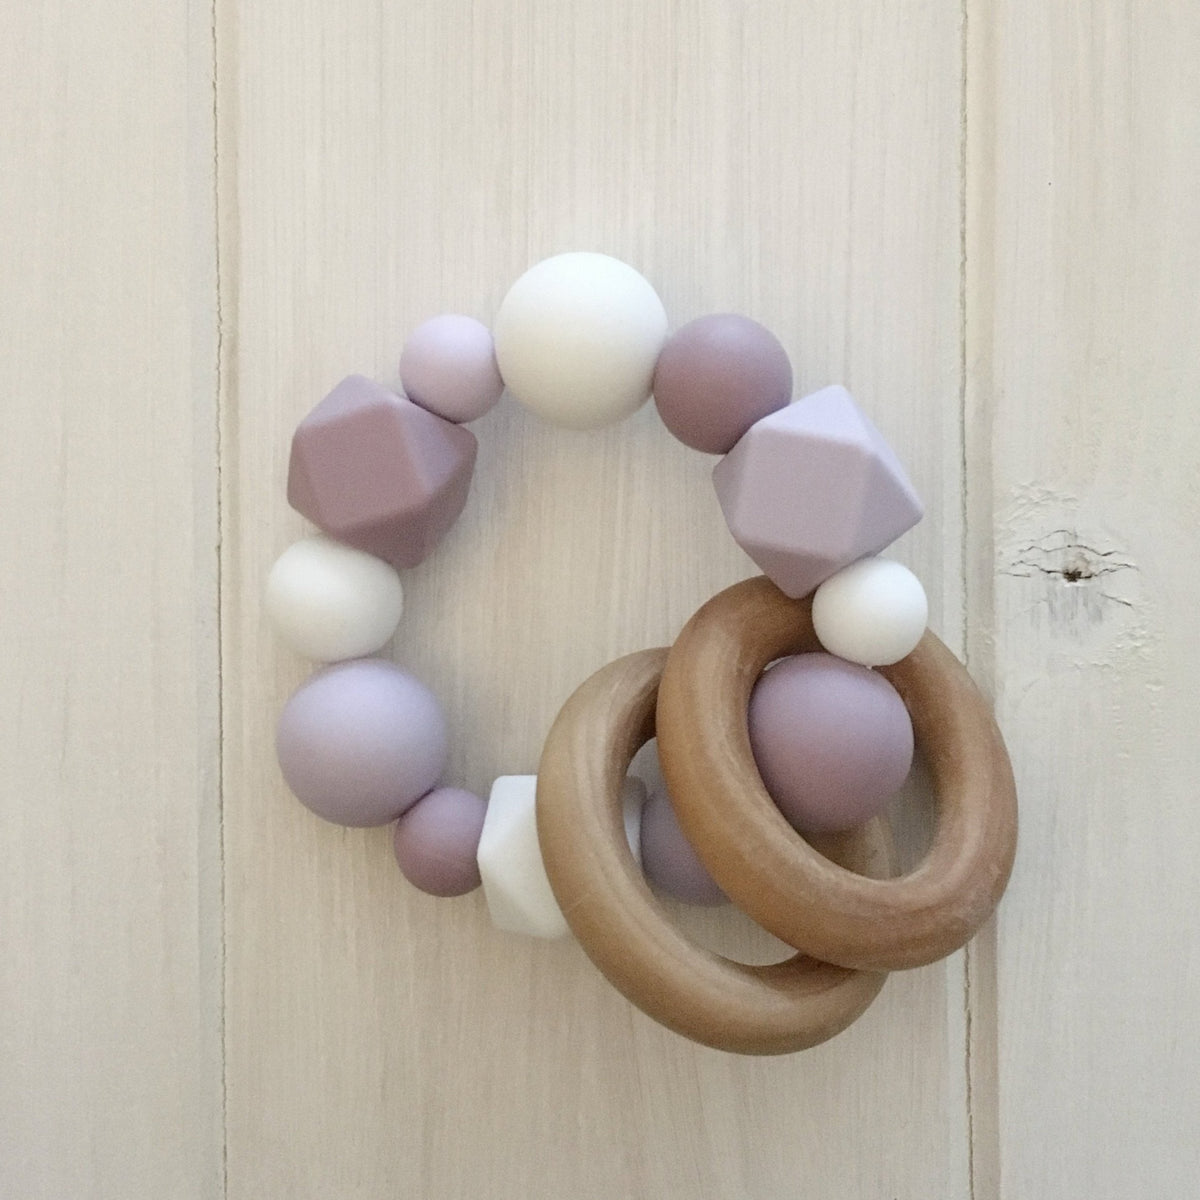 Lavender Fields Silicone Teething Rattle